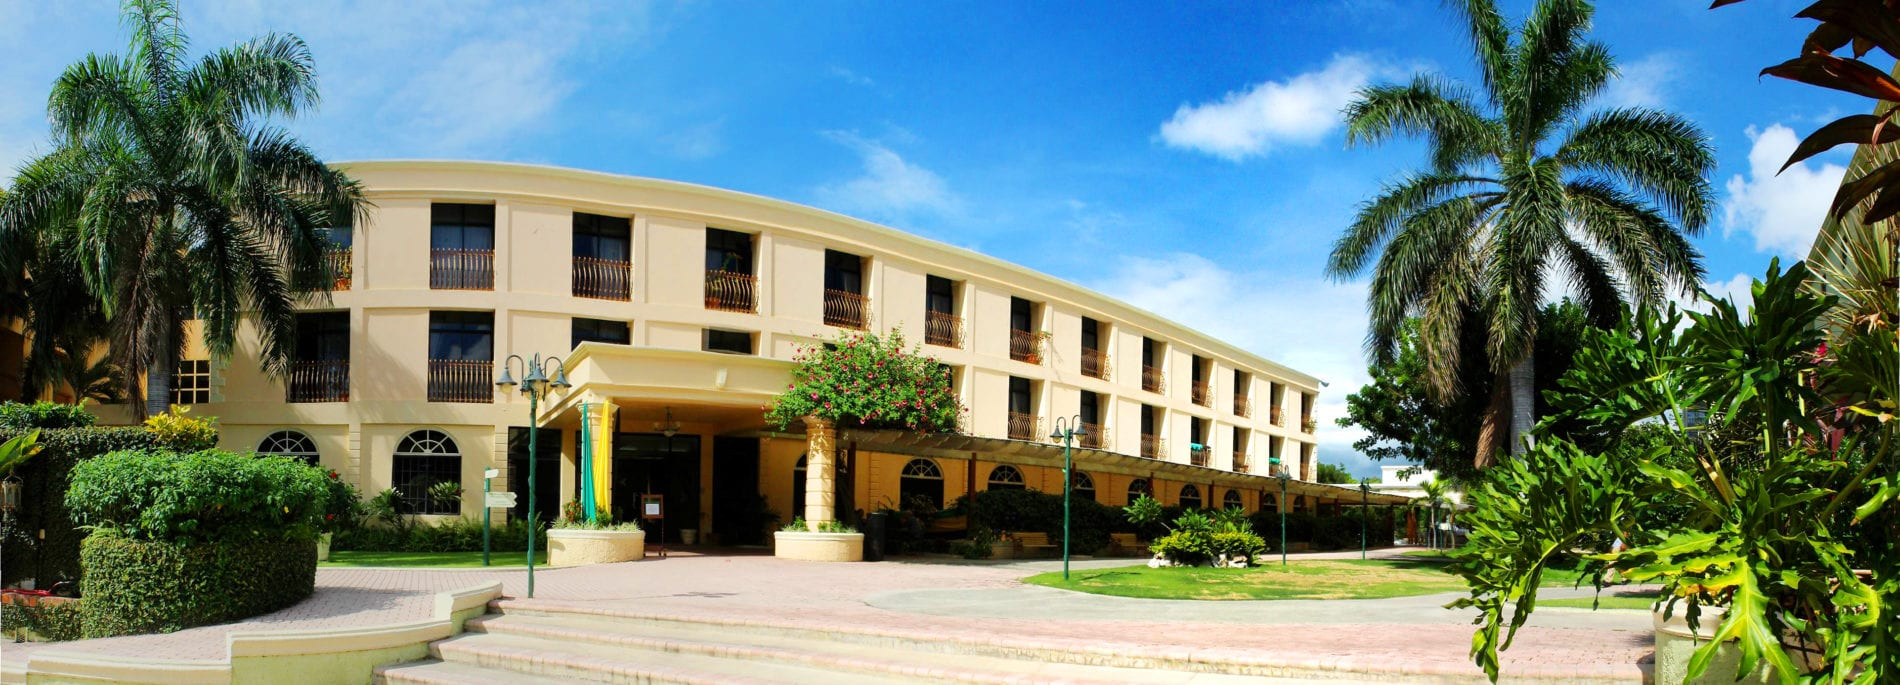 Rooms: The Knutsford Court Hotel In Hotels, Caribbean, Jamaica